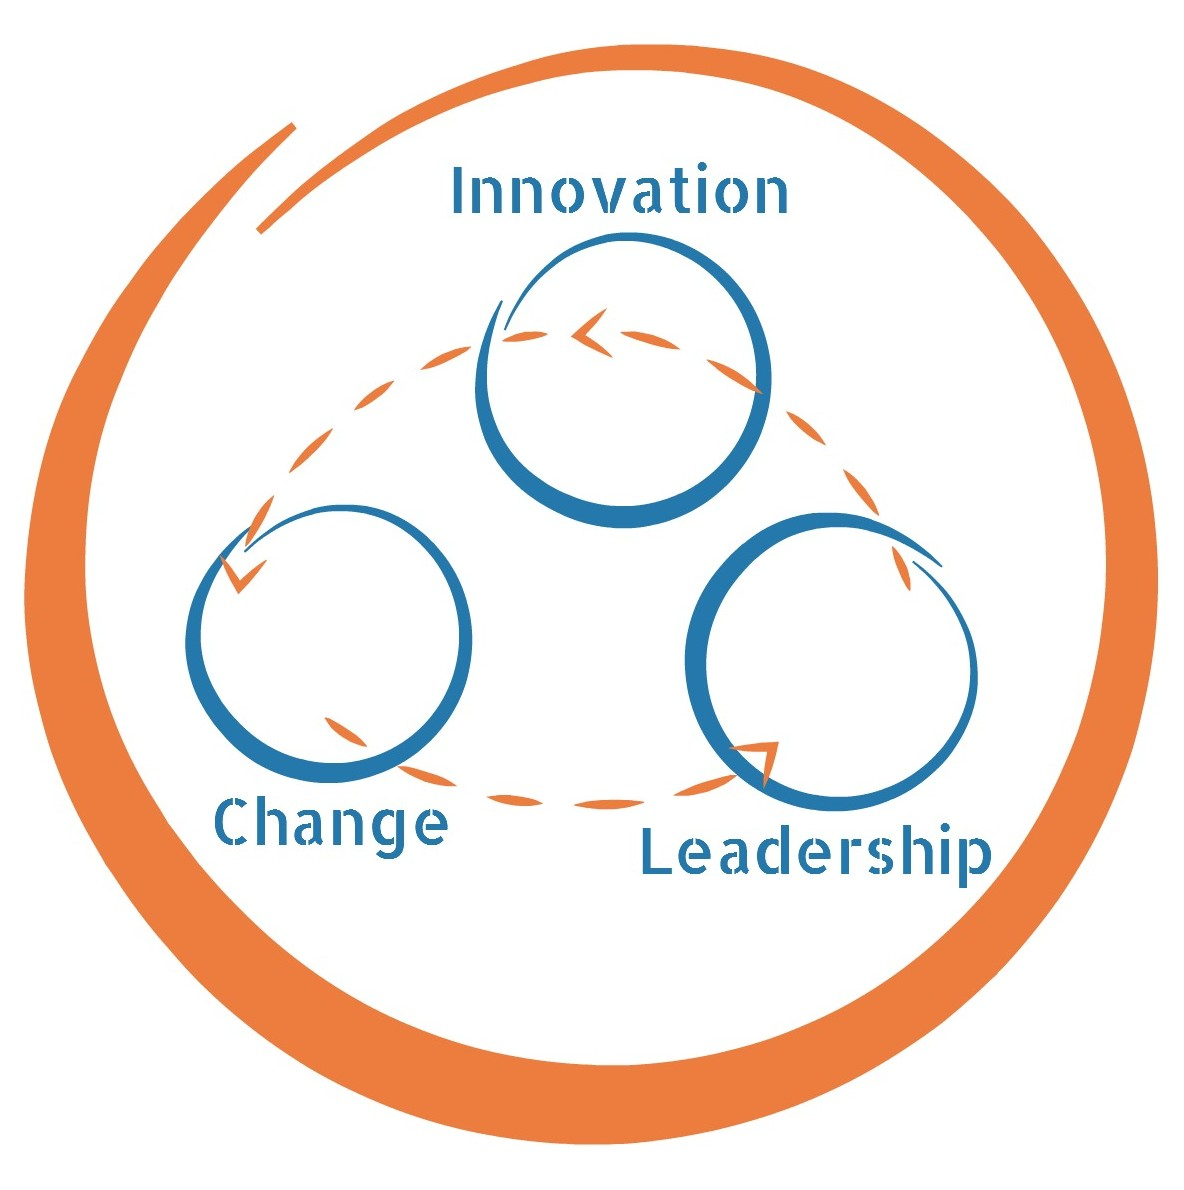 Innovation, Change & Leadership - Icon